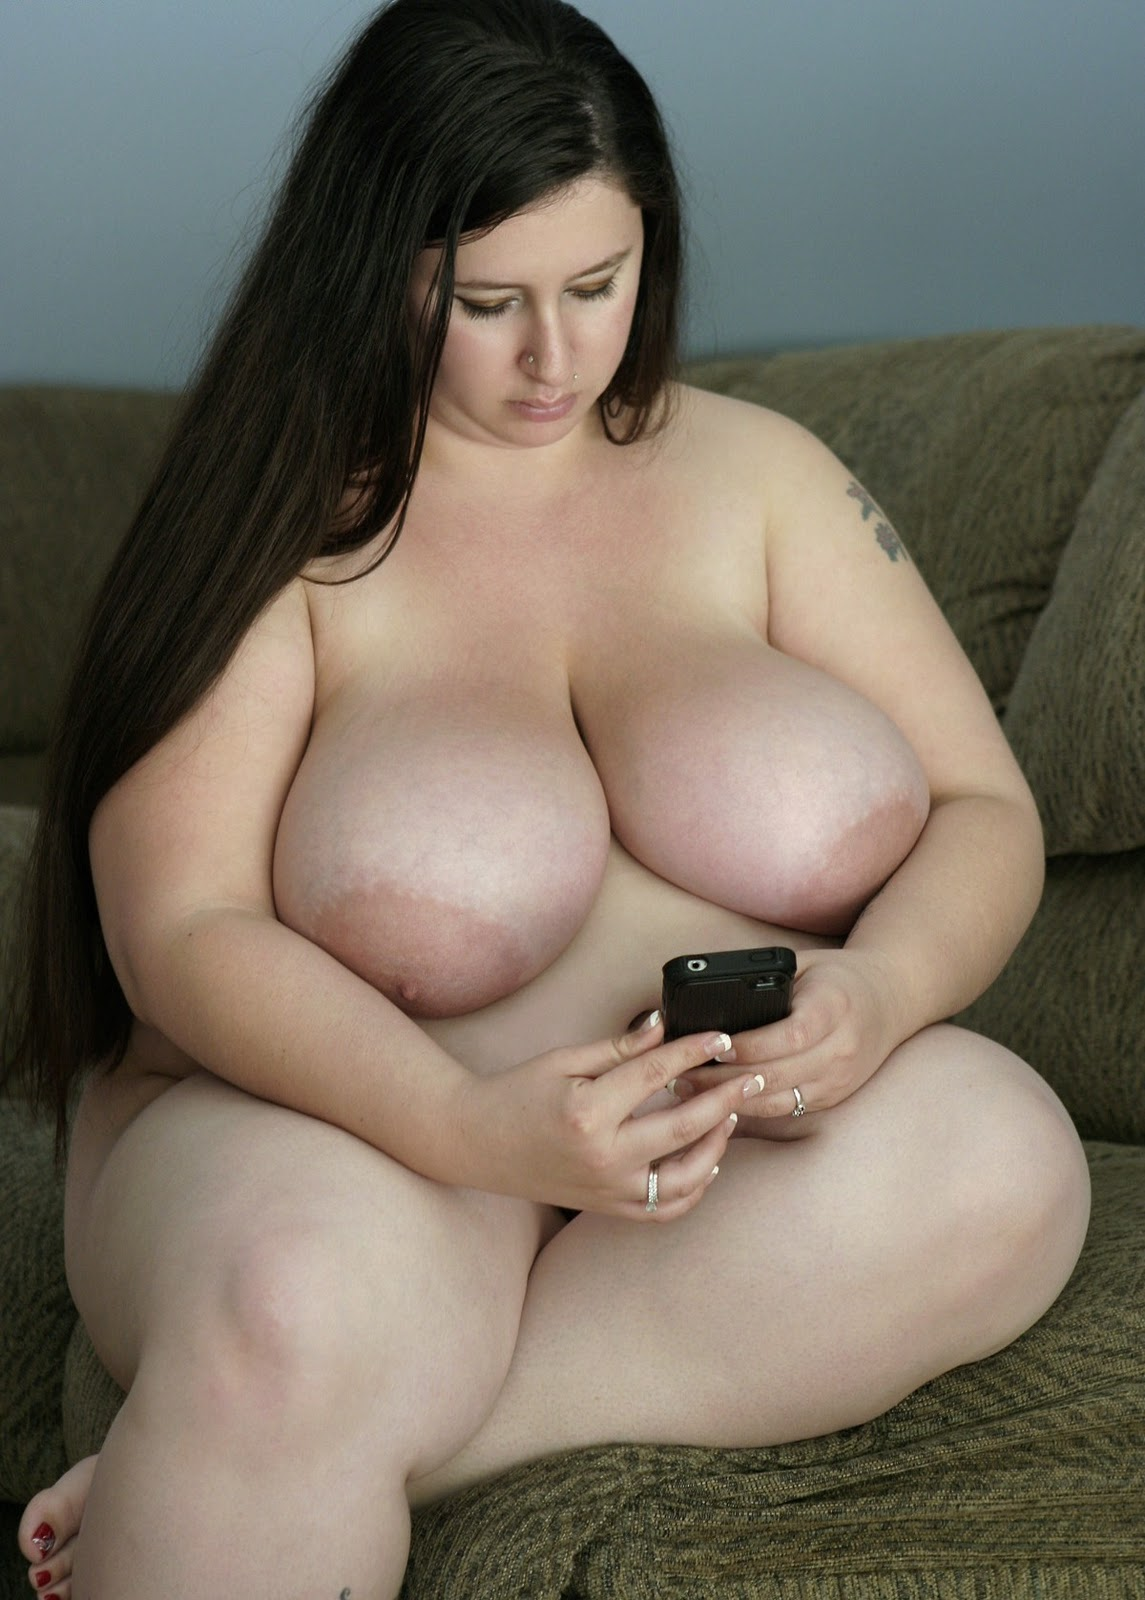 Final, sorry, Pictures of sexy thick naked girls very good